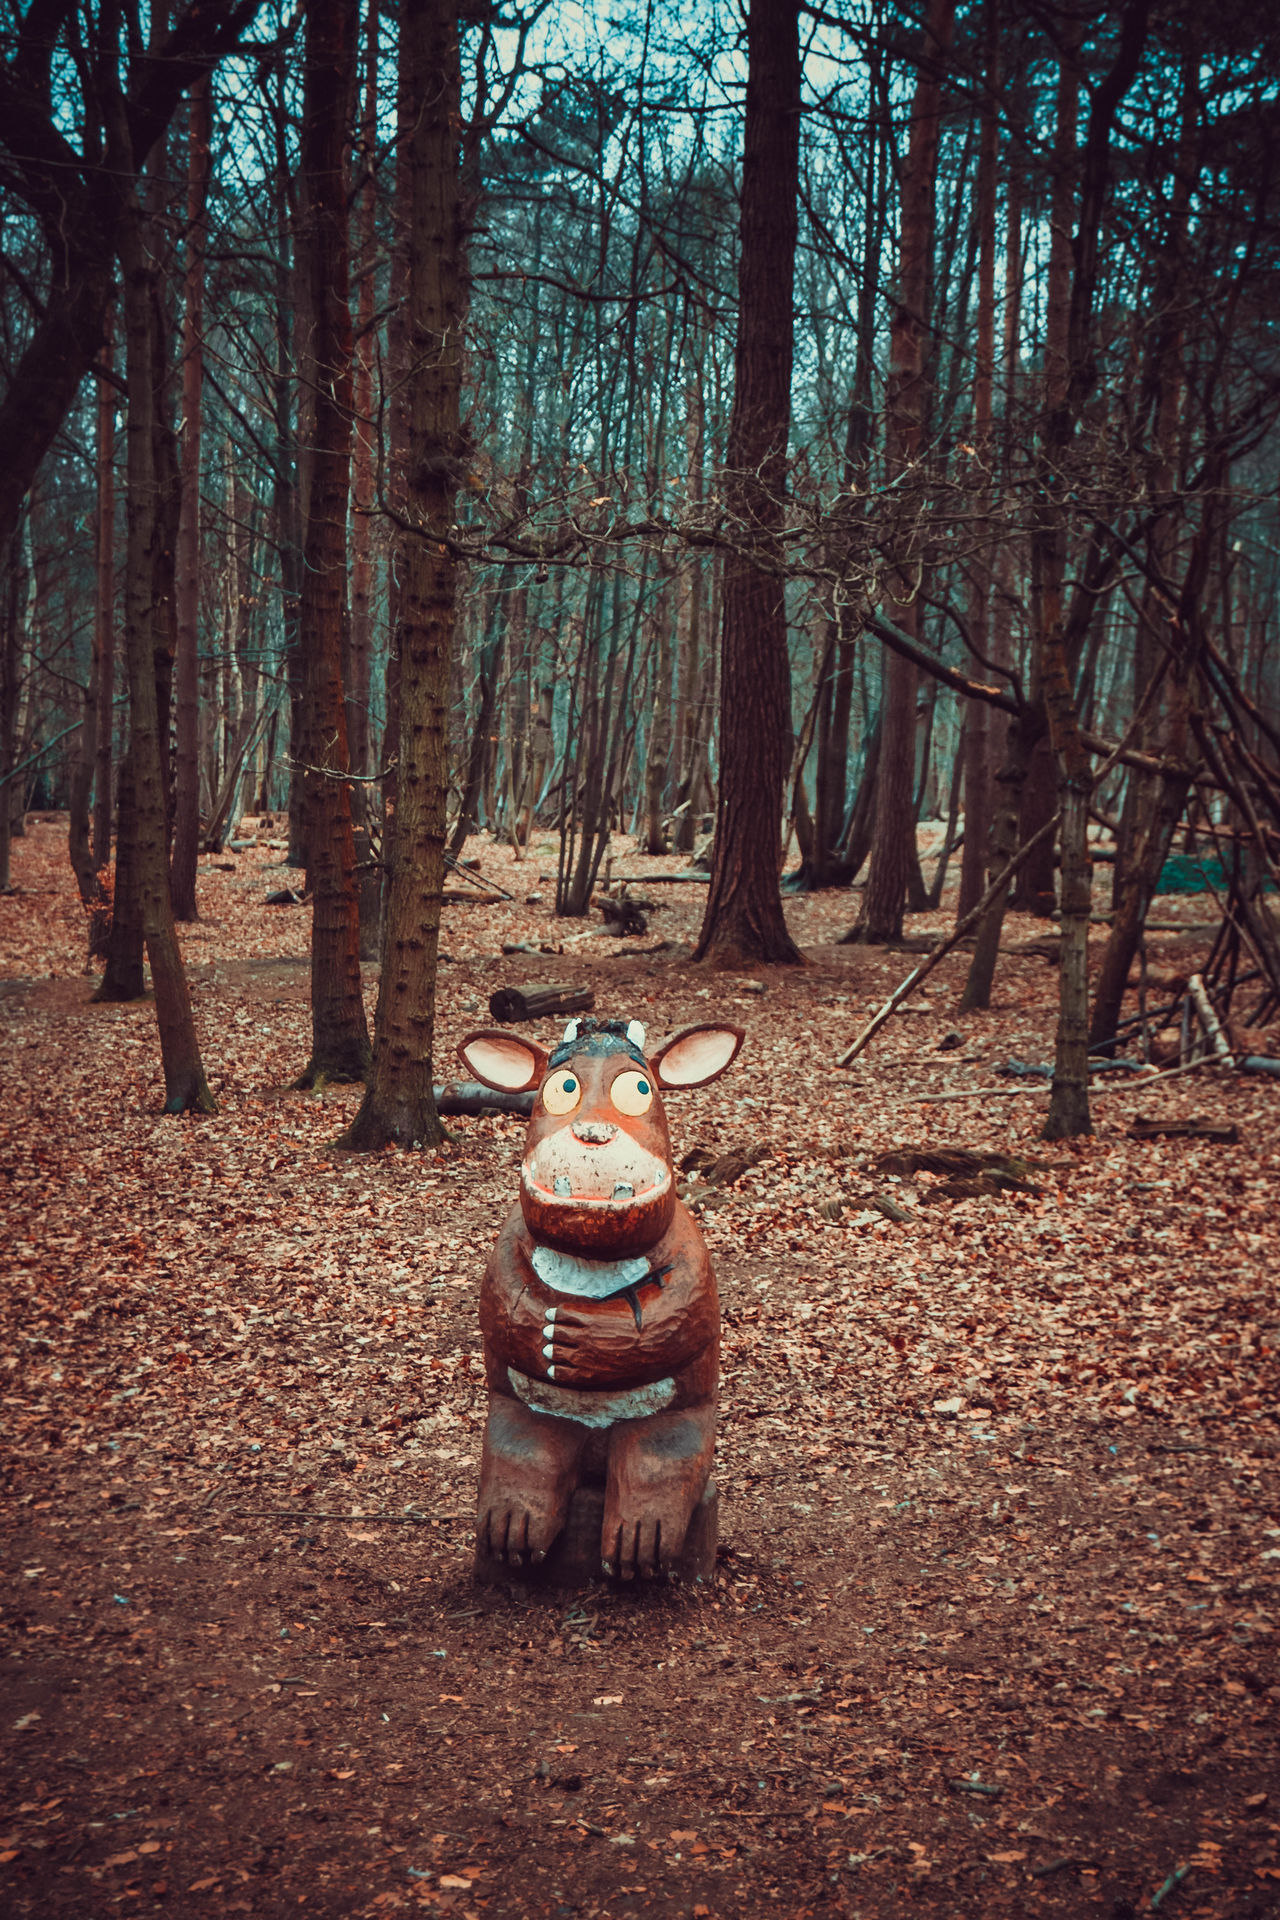 Day Forest Forest Walk Gruffalo Gruffalo Trail Gruffalo's Child Lots Of Leaves Nature No People Outdoors Trees Wooden Sculpture WoodLand